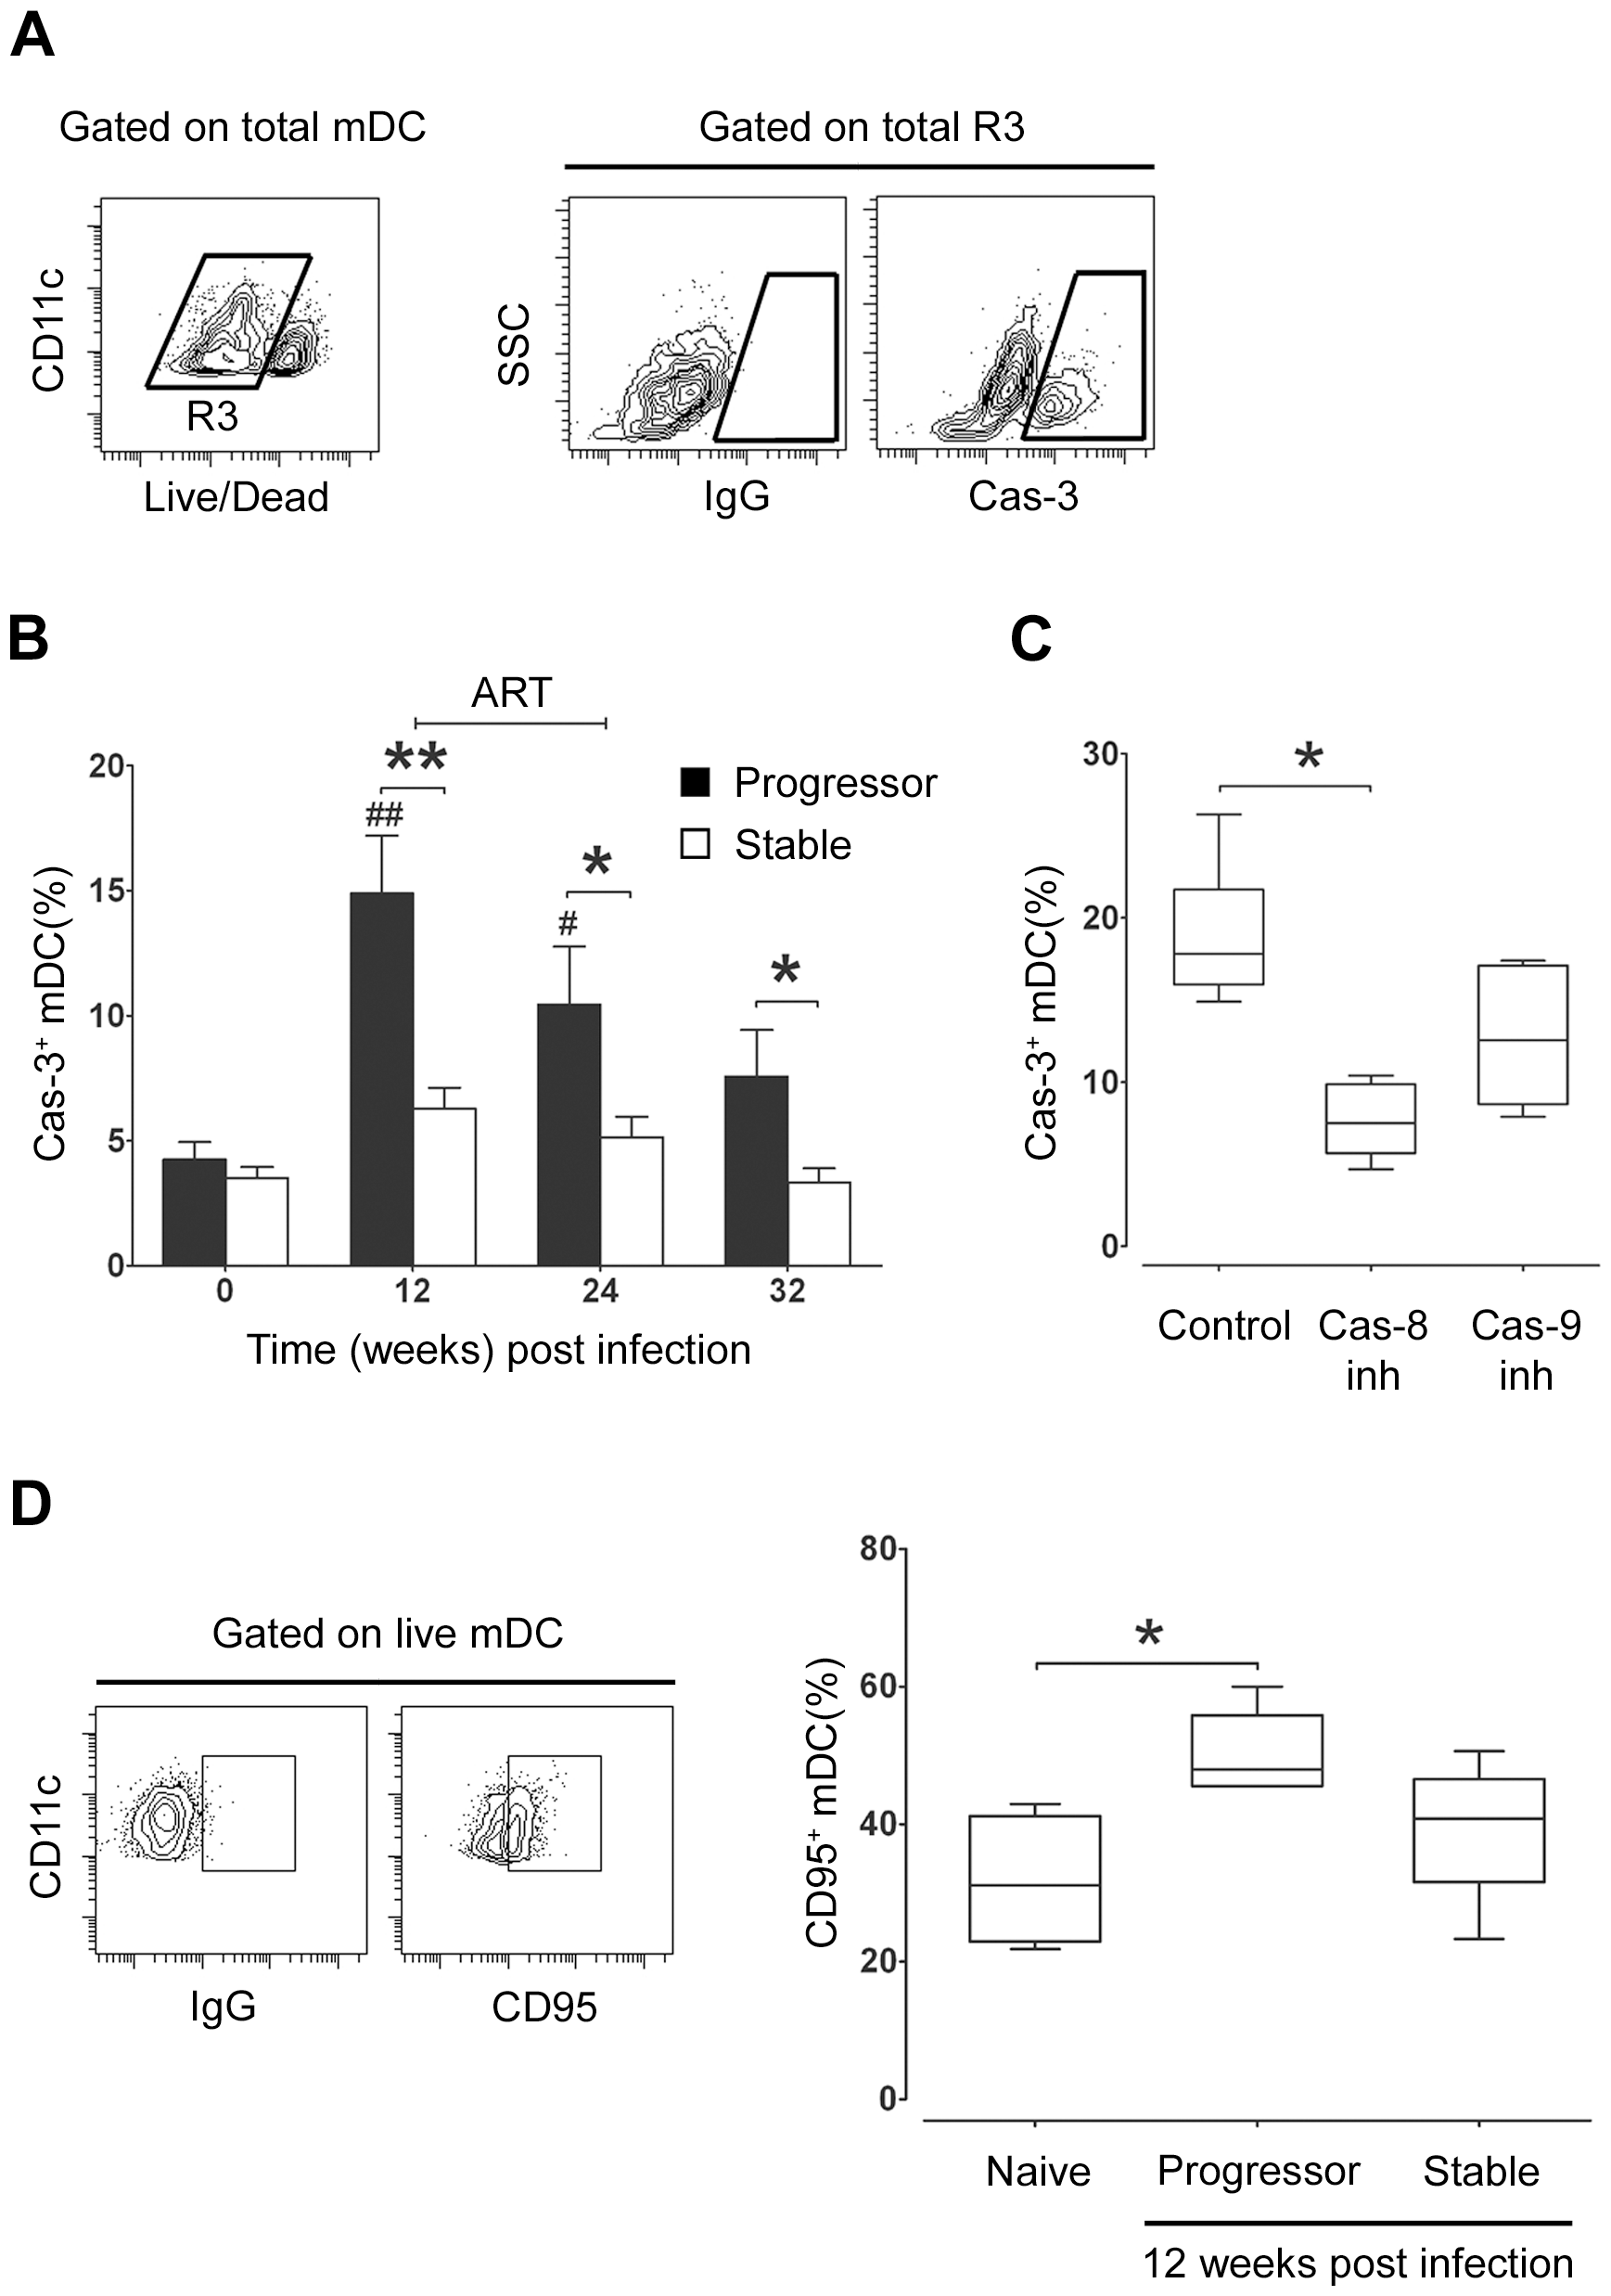 Apoptosis of lymph node mDC increases in progressive but not stable SIV infection.